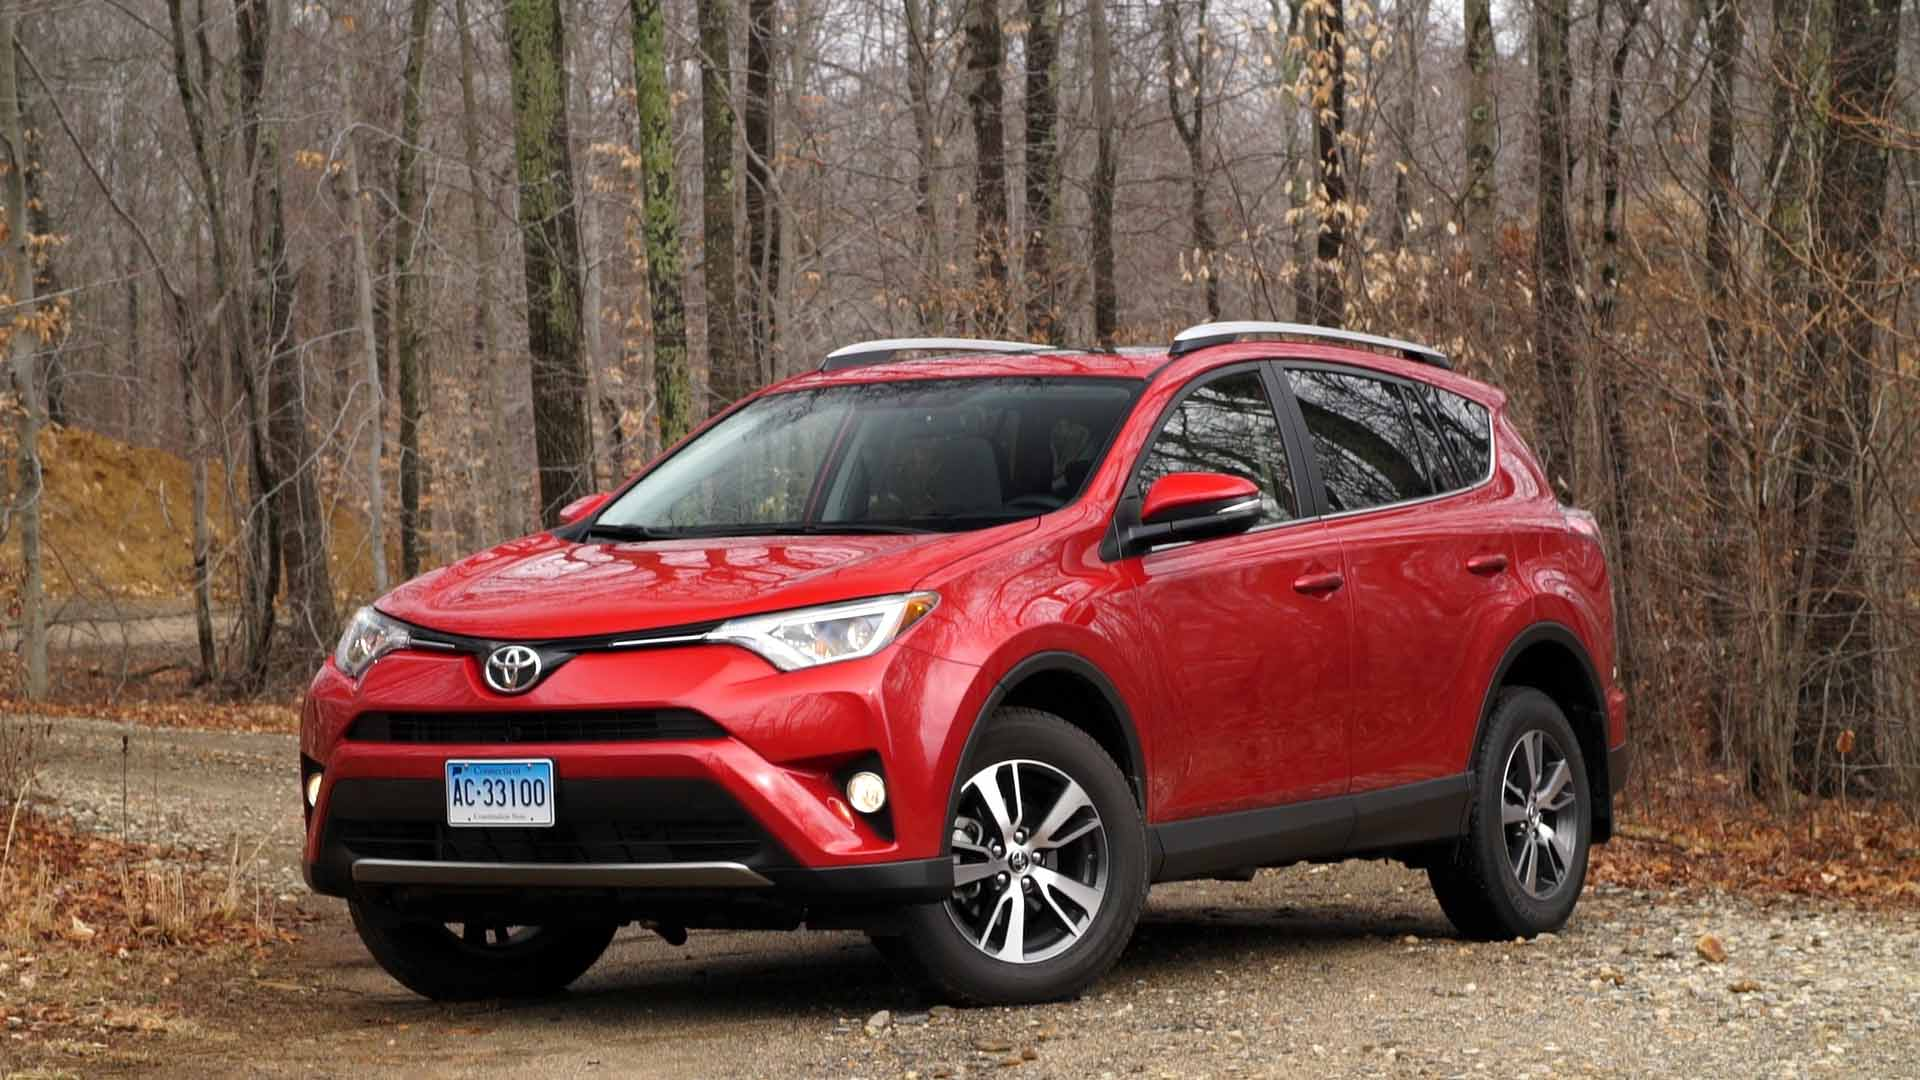 Toyota RAV4 Owners Manual: Cleaning and protectingthe vehicle exterior